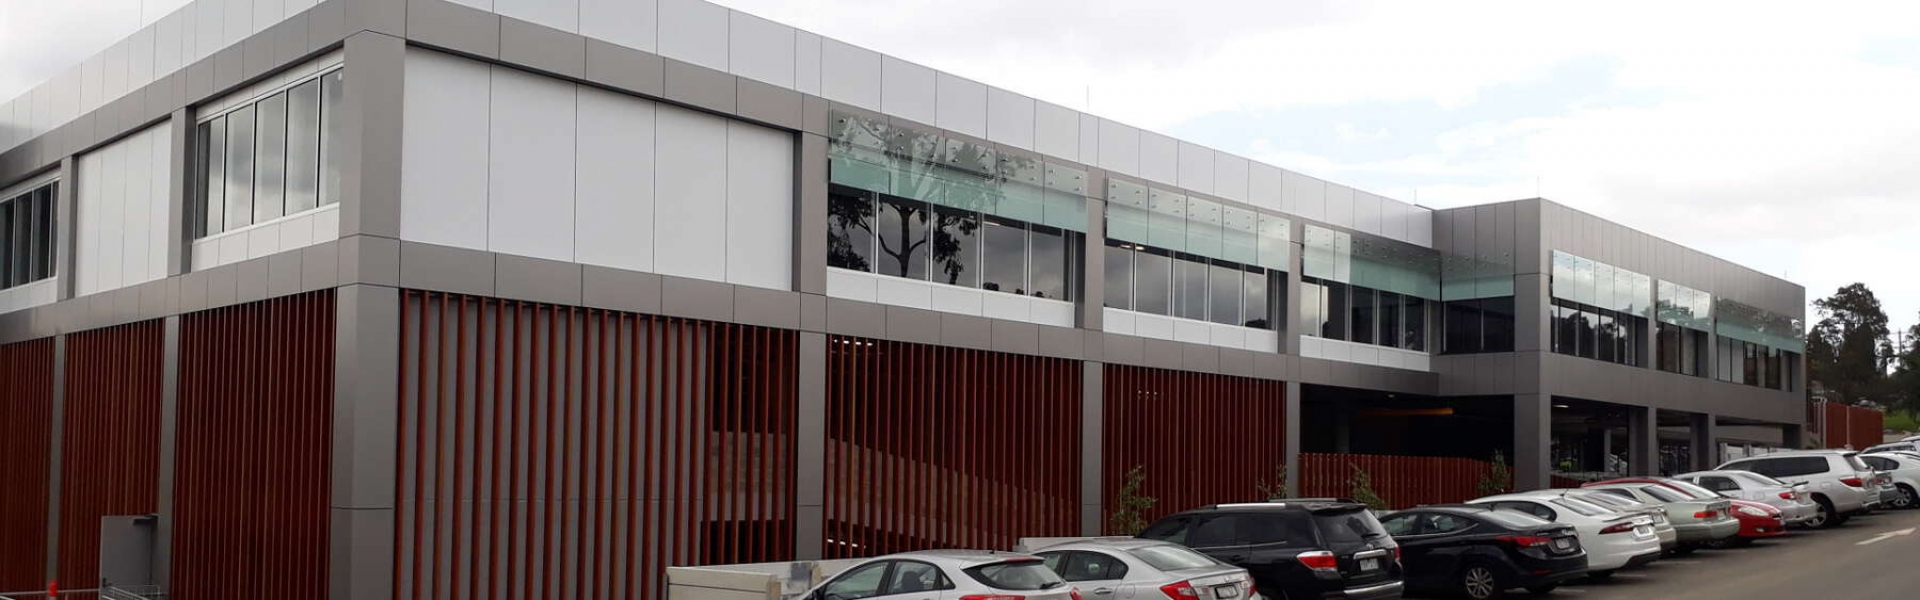 commercial window cleaning mulgrave private hospital melbourne